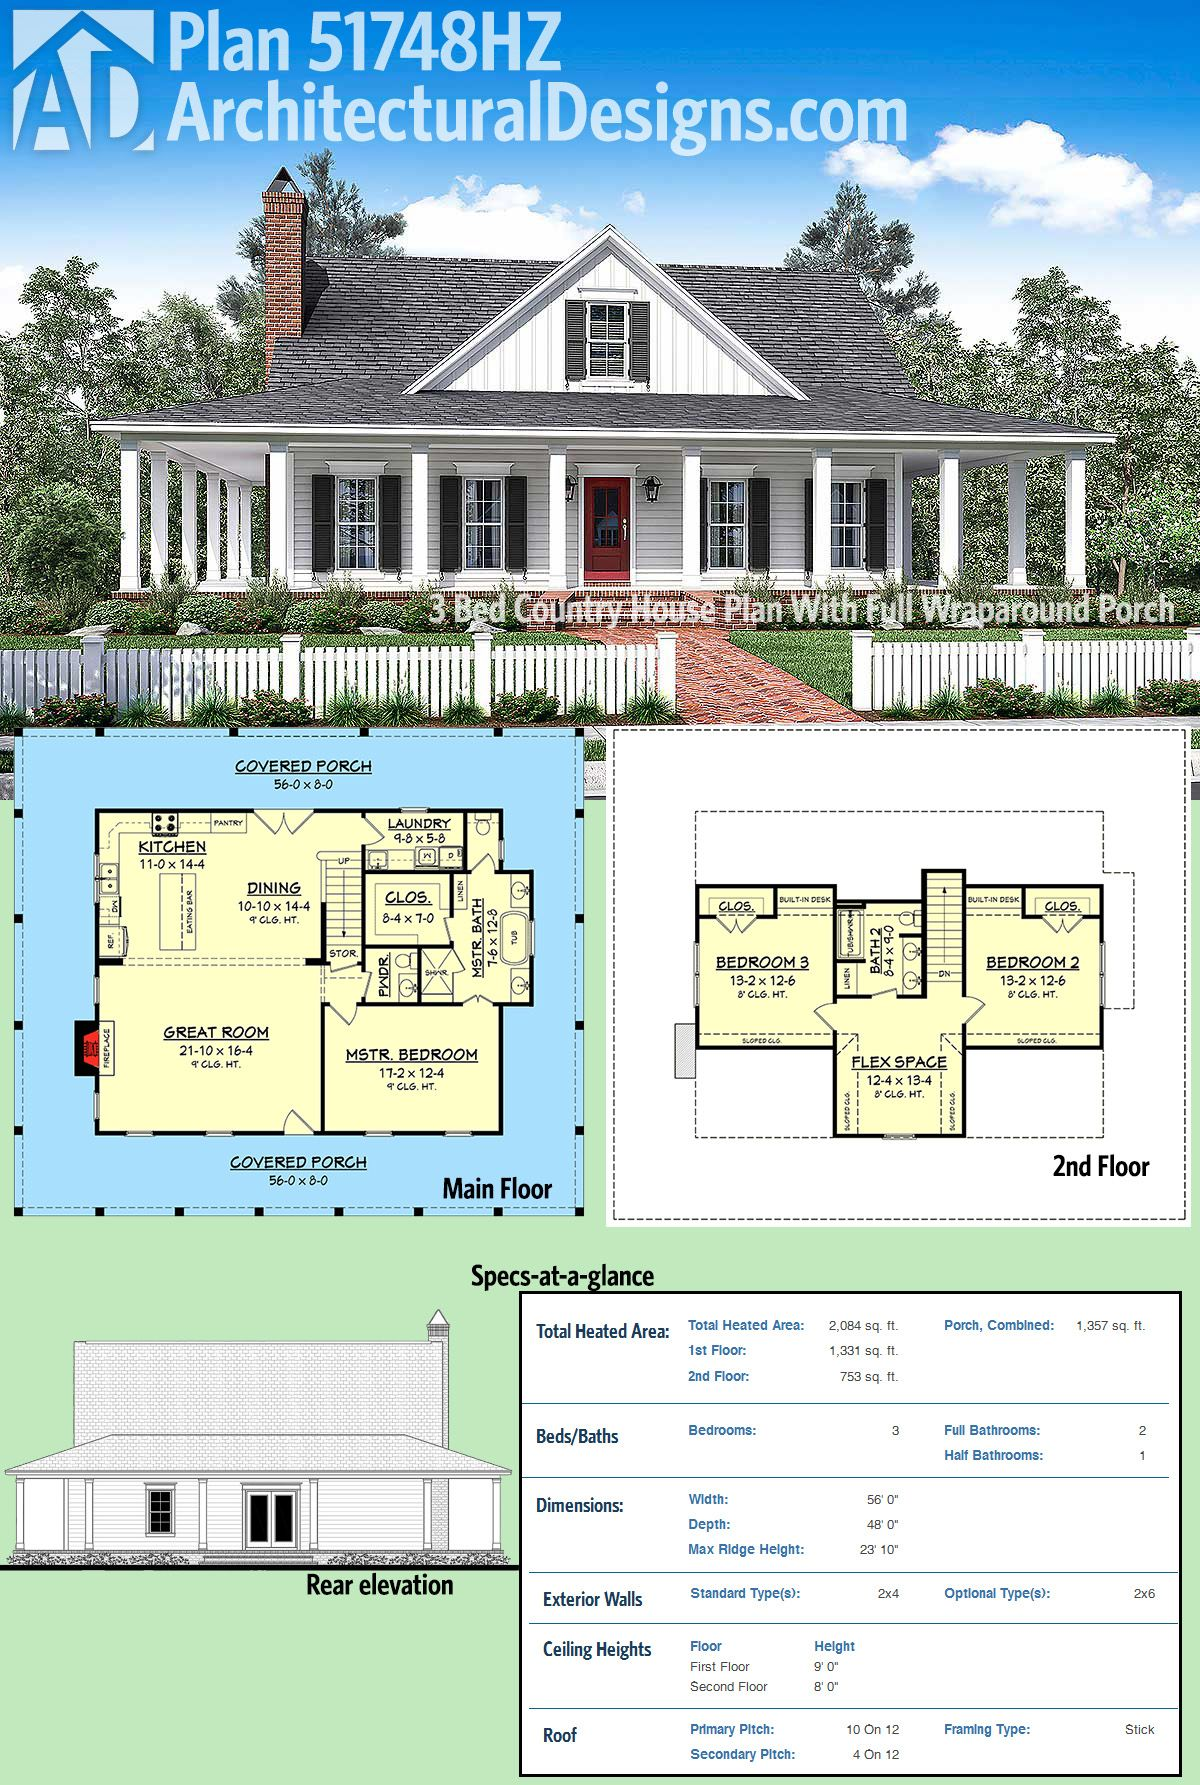 architectural designs house plan 51748hz gives you a full wraparound porch outside and an open concept floor plan inside ready when you are - Architectural Designs Com